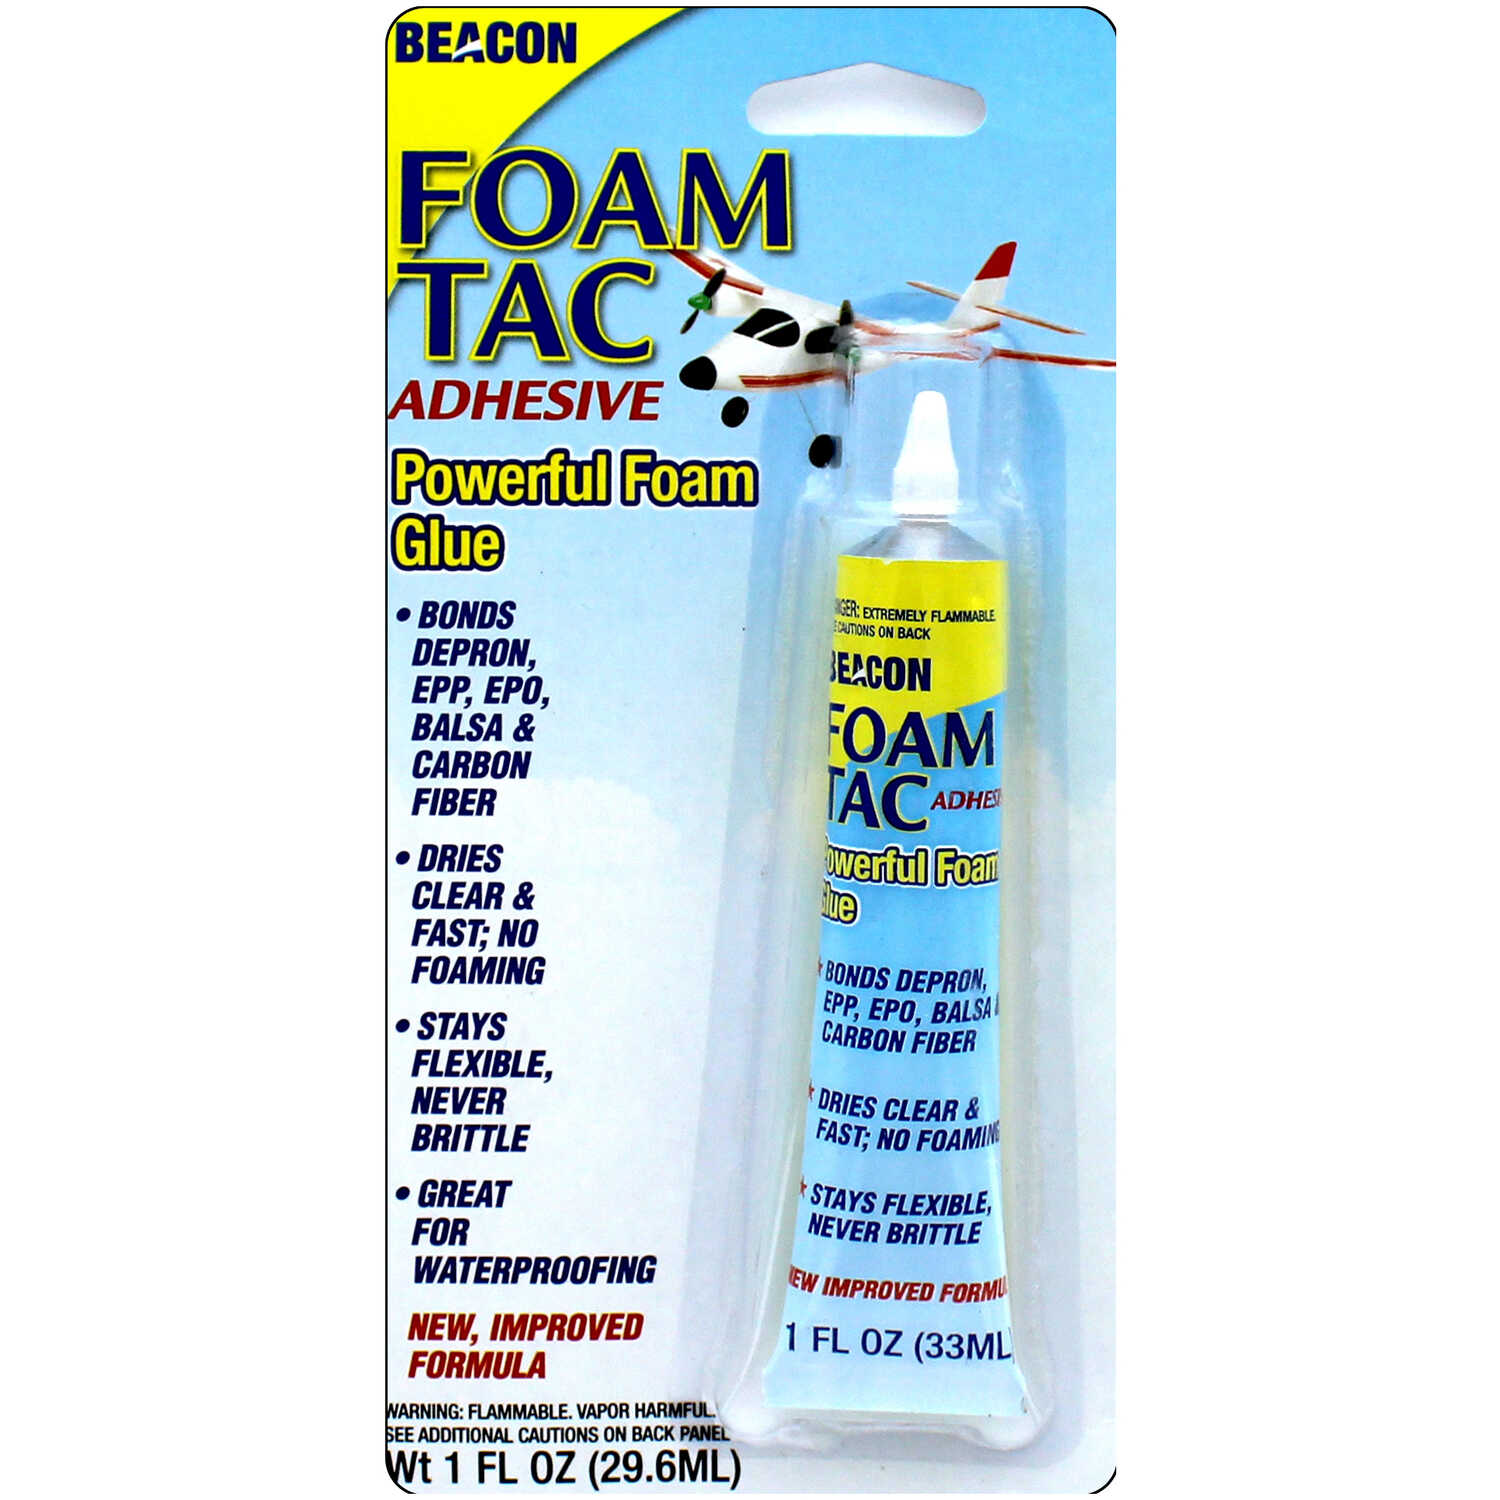 Beacon  Foam Tac  Medium to High  Foam Adhesive  1 oz.